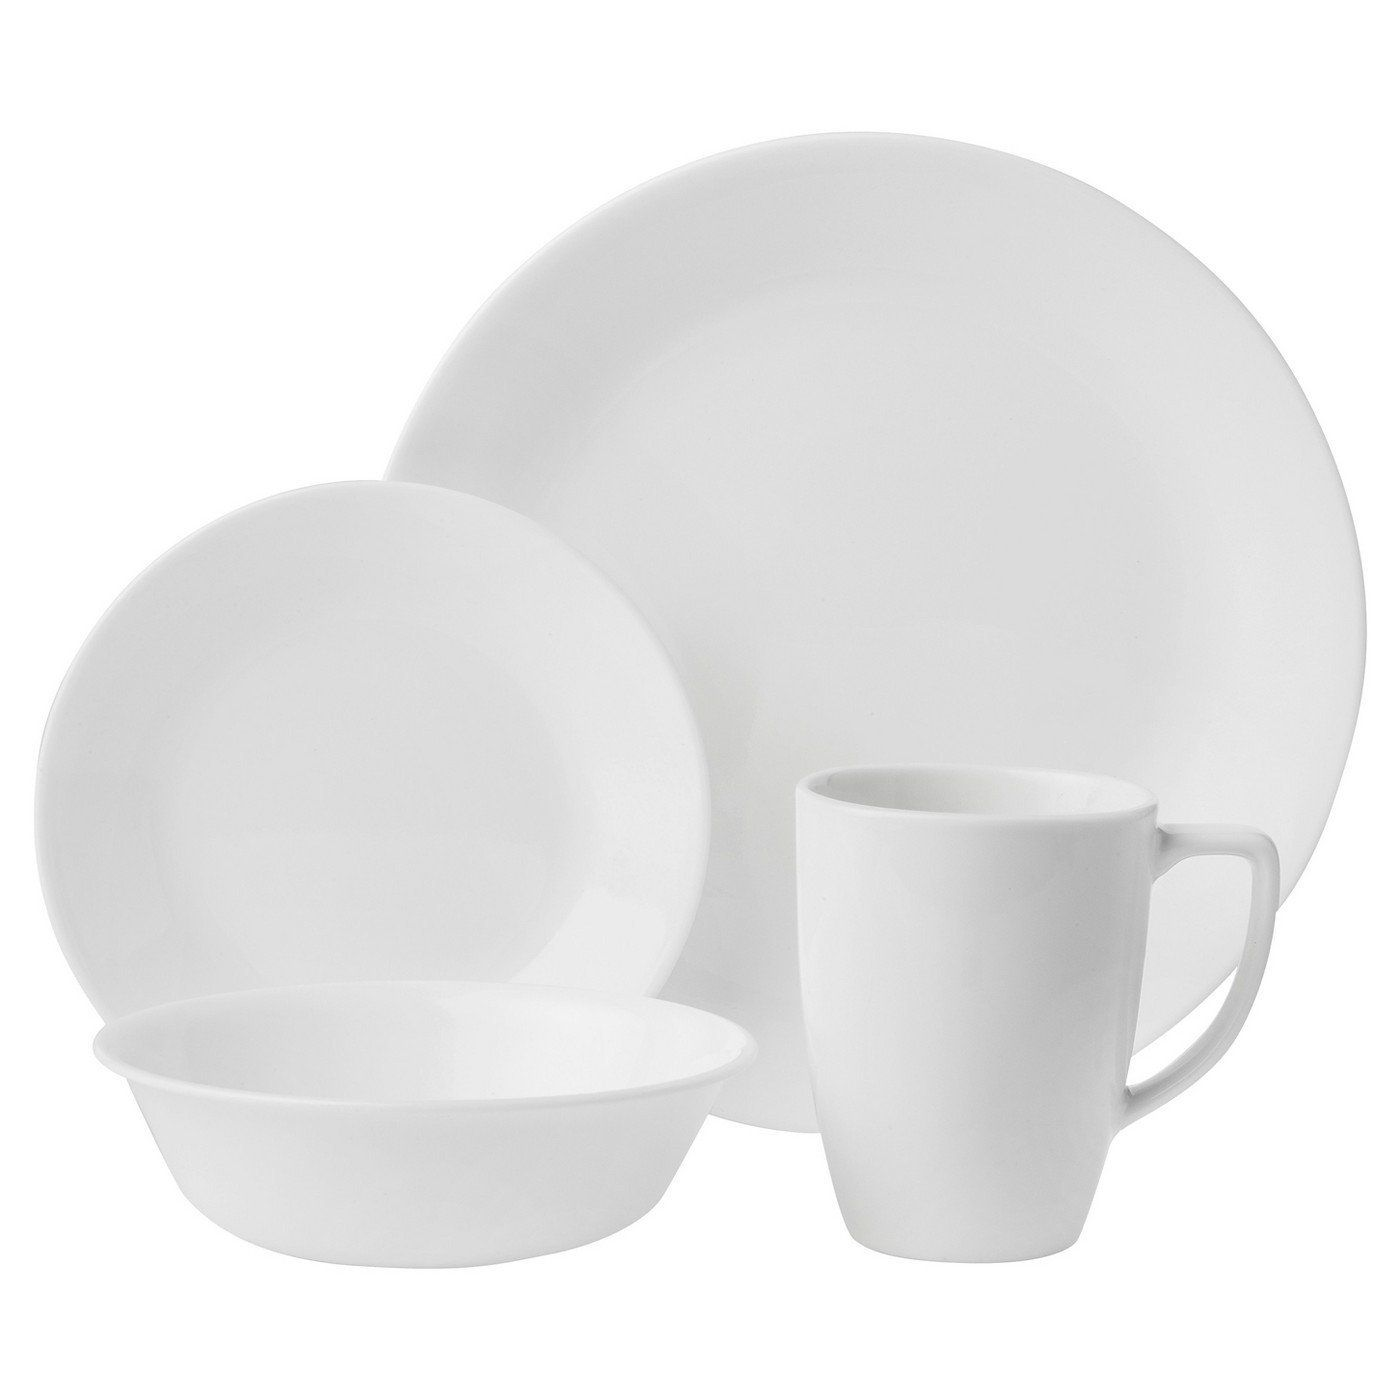 Corelle is known for making lightweight break-resistant dinnerware sets that are made of  sc 1 st  HuffPost & 8 Durable Dinnerware Sets That Wonu0027t Break | HuffPost